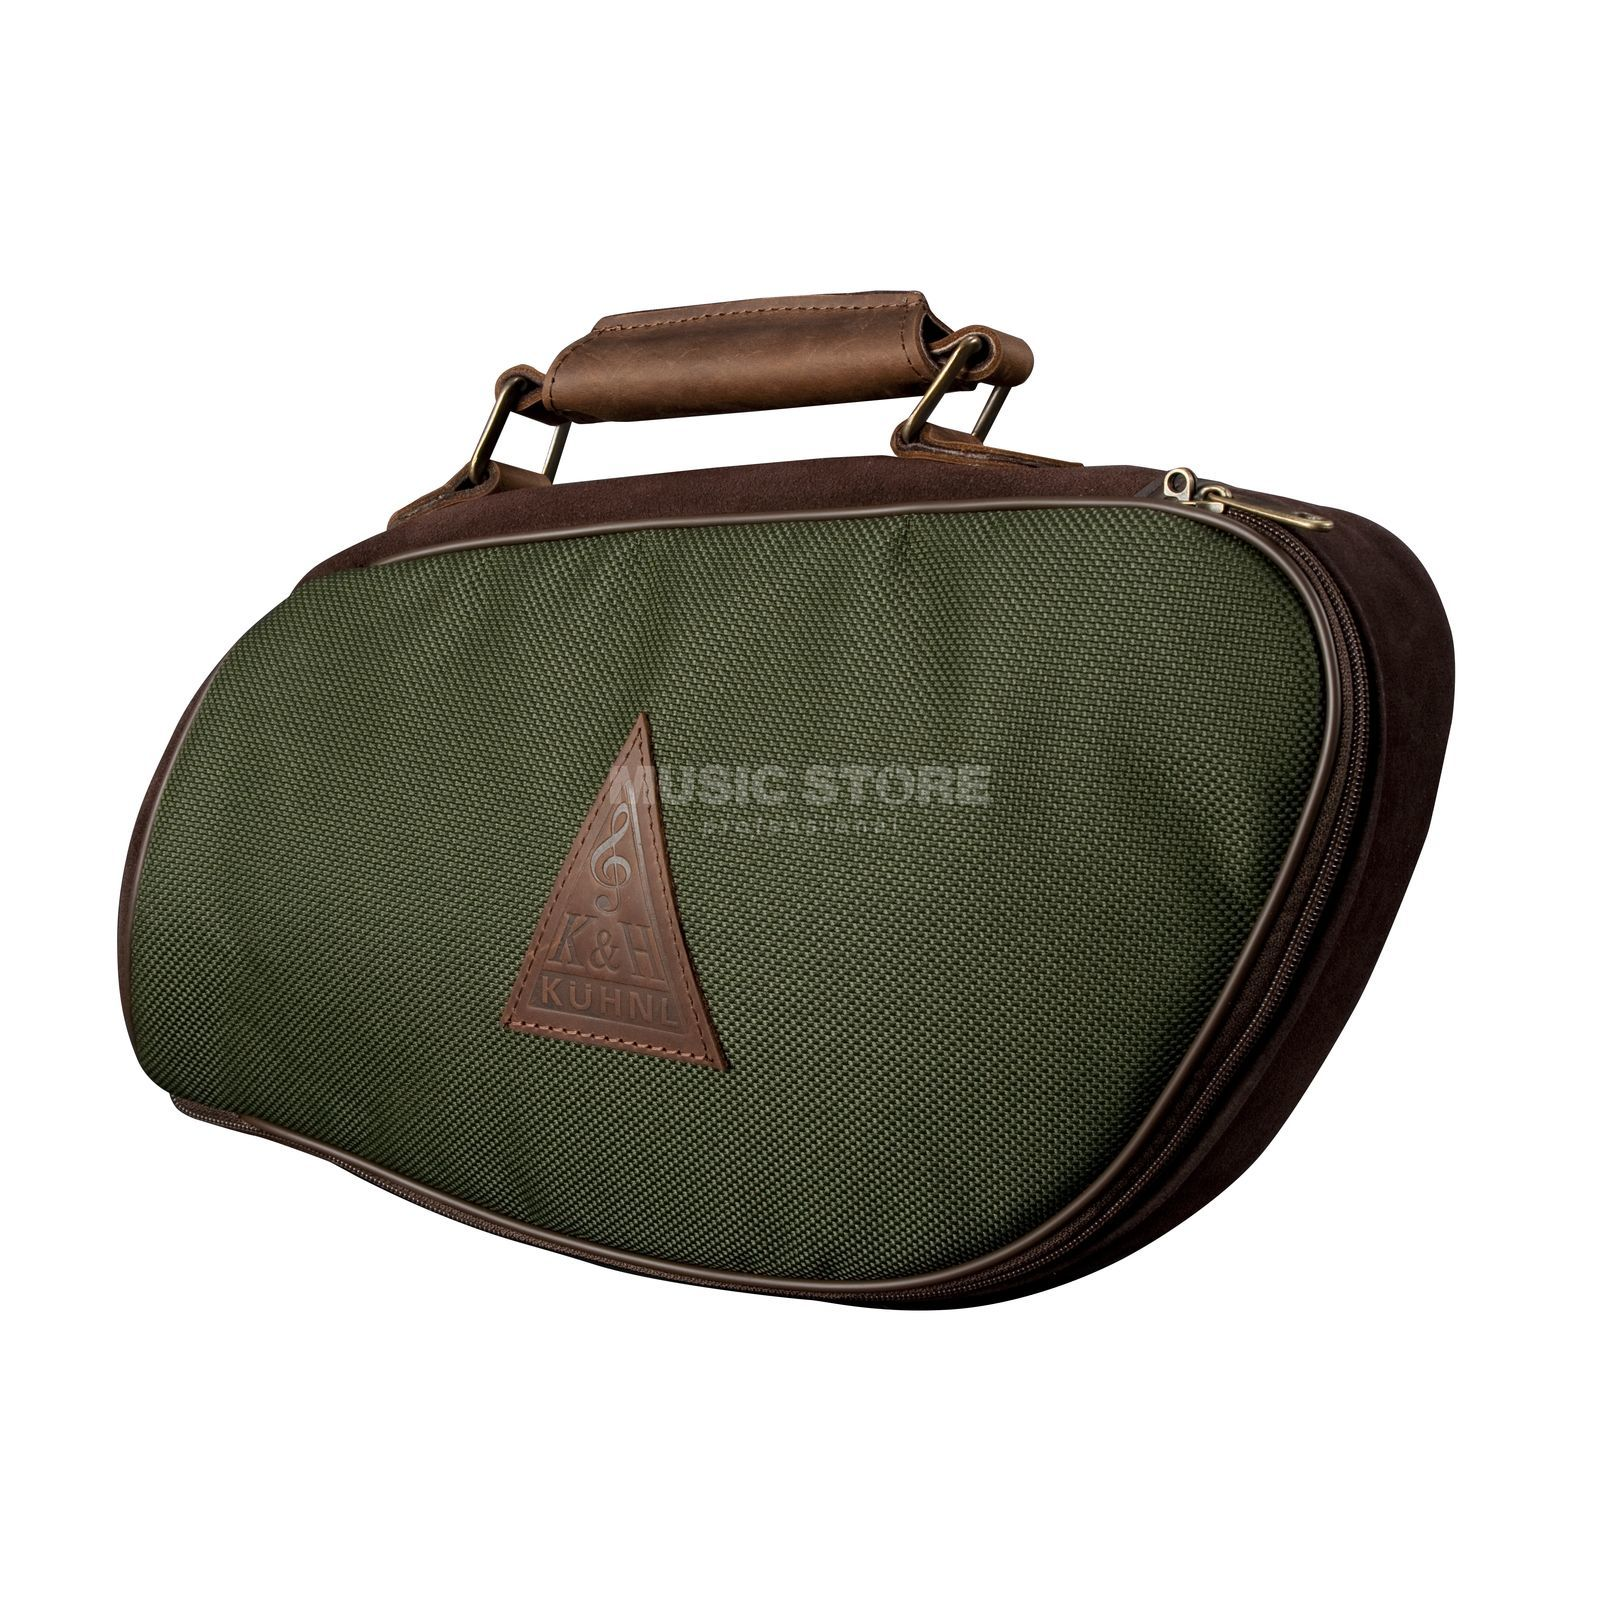 Kühnl & Hoyer forst-Pless-Horn Bag - green, water-resistant Product Image